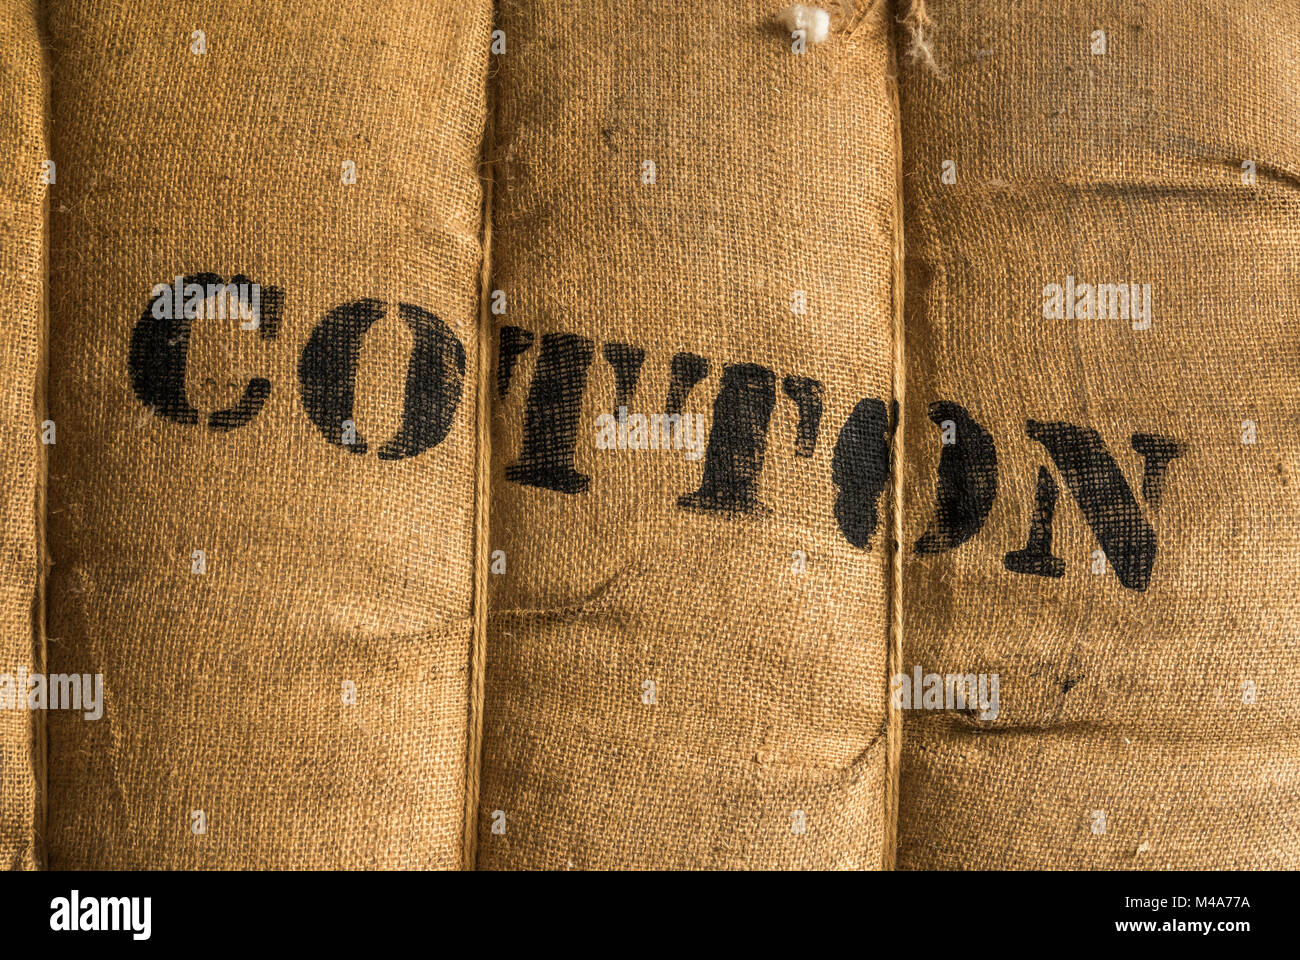 Vintage Bale Of Cotton - Stock Image